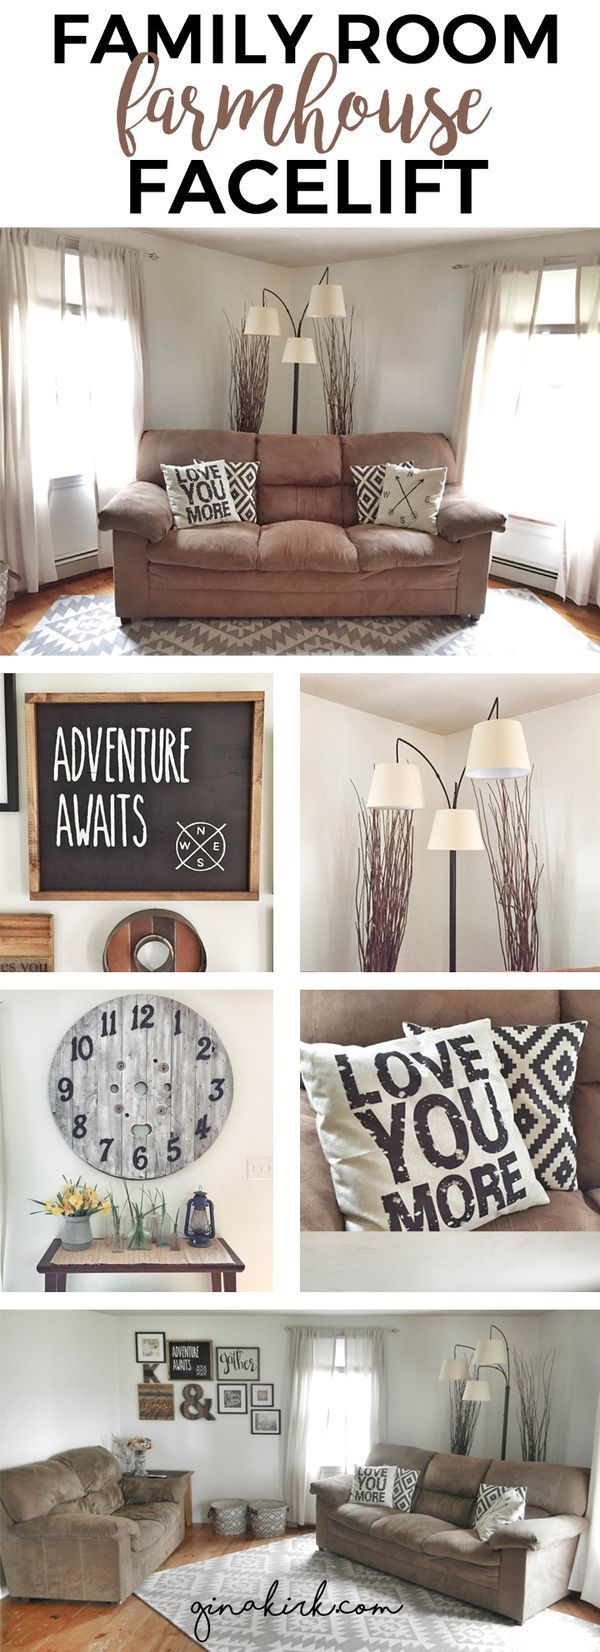 Family Room Decorations best 25+ farmhouse family rooms ideas on pinterest | cozy living